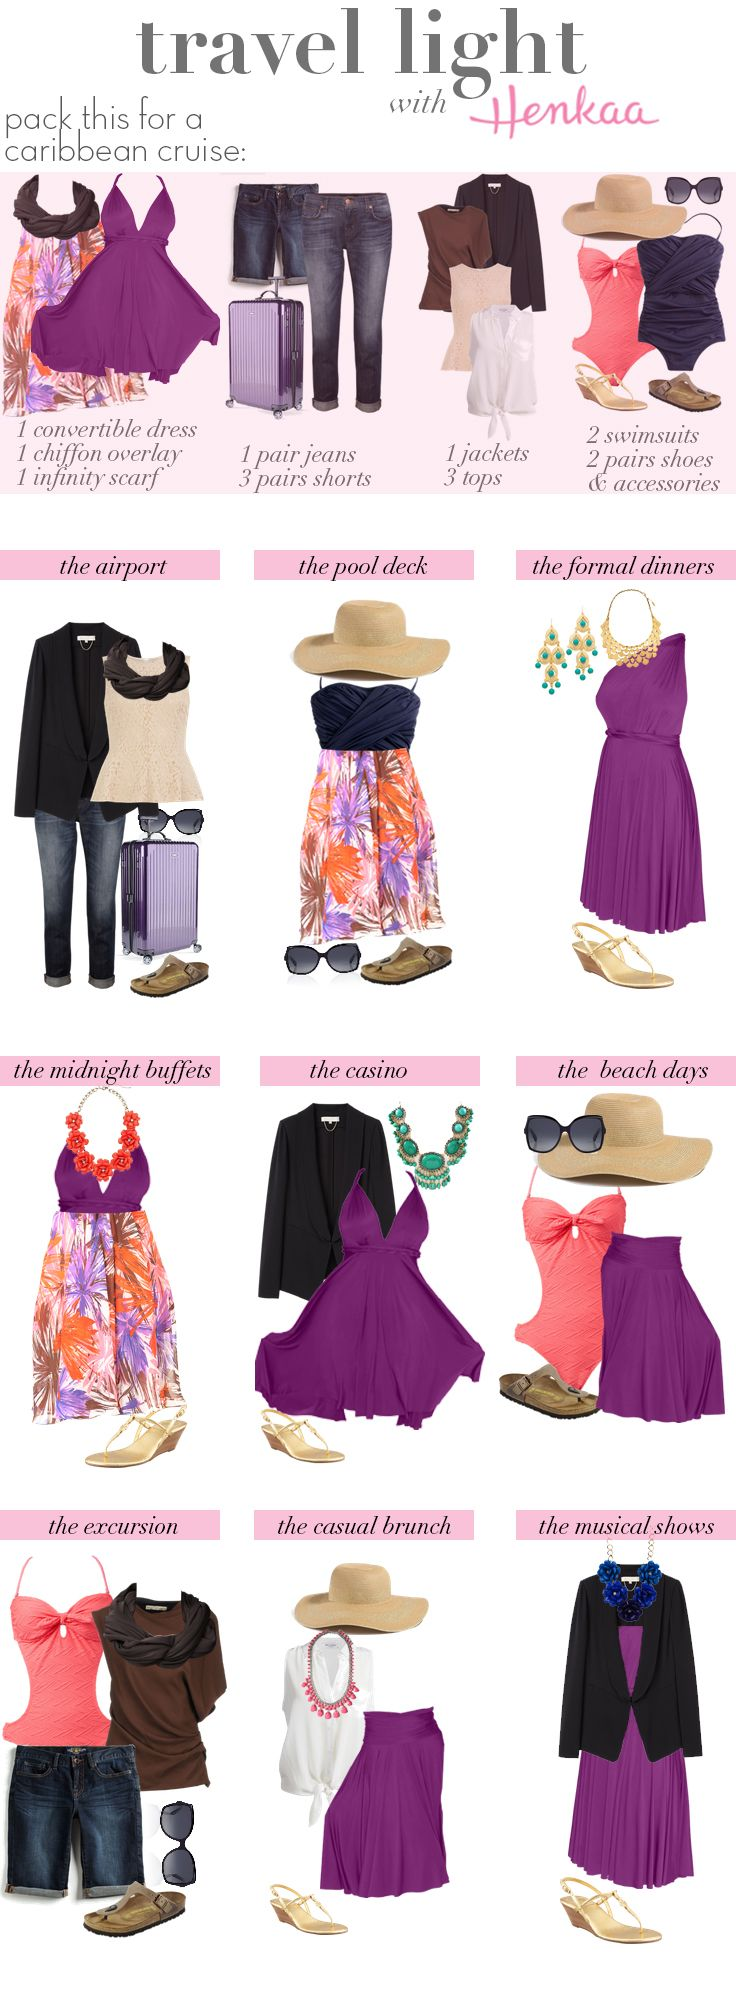 Travel Light with Henkaa – Caribbean Cruise: Use a convertible dress to stretch your clothing options and make carry on travel easier